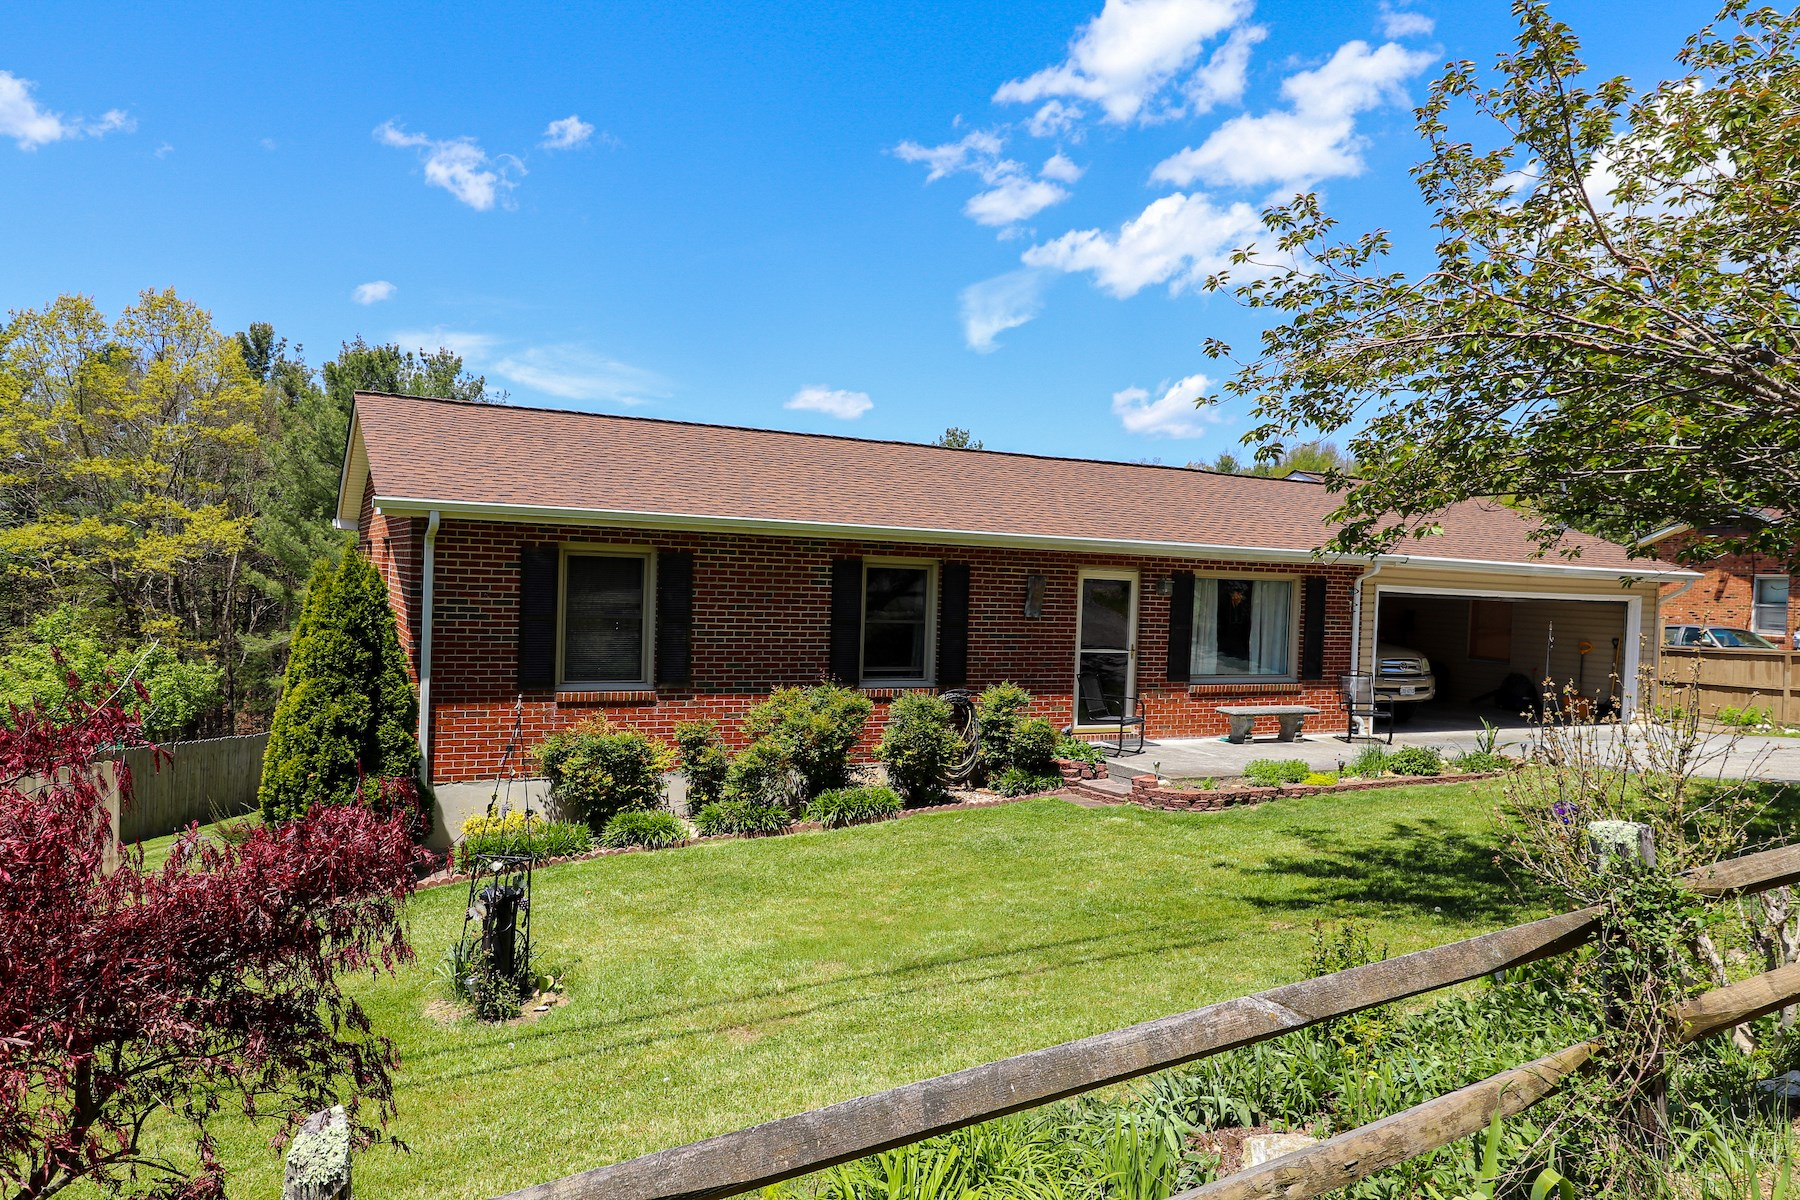 Beautiful Home for Sale in Bent Mountain VA!